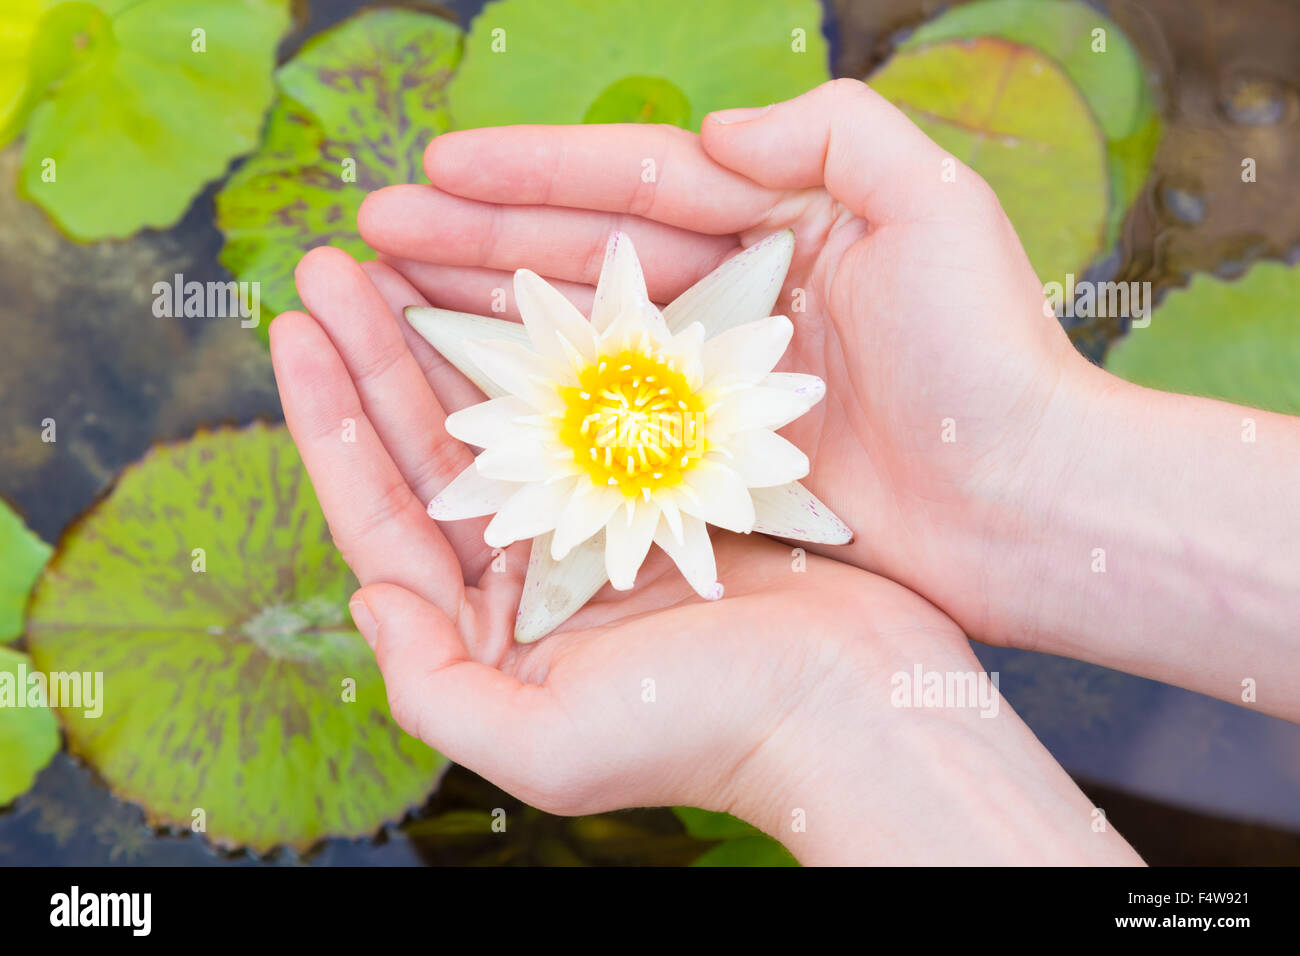 Woman Hands Holding Lotus Flower Stock Photo 89066377 Alamy